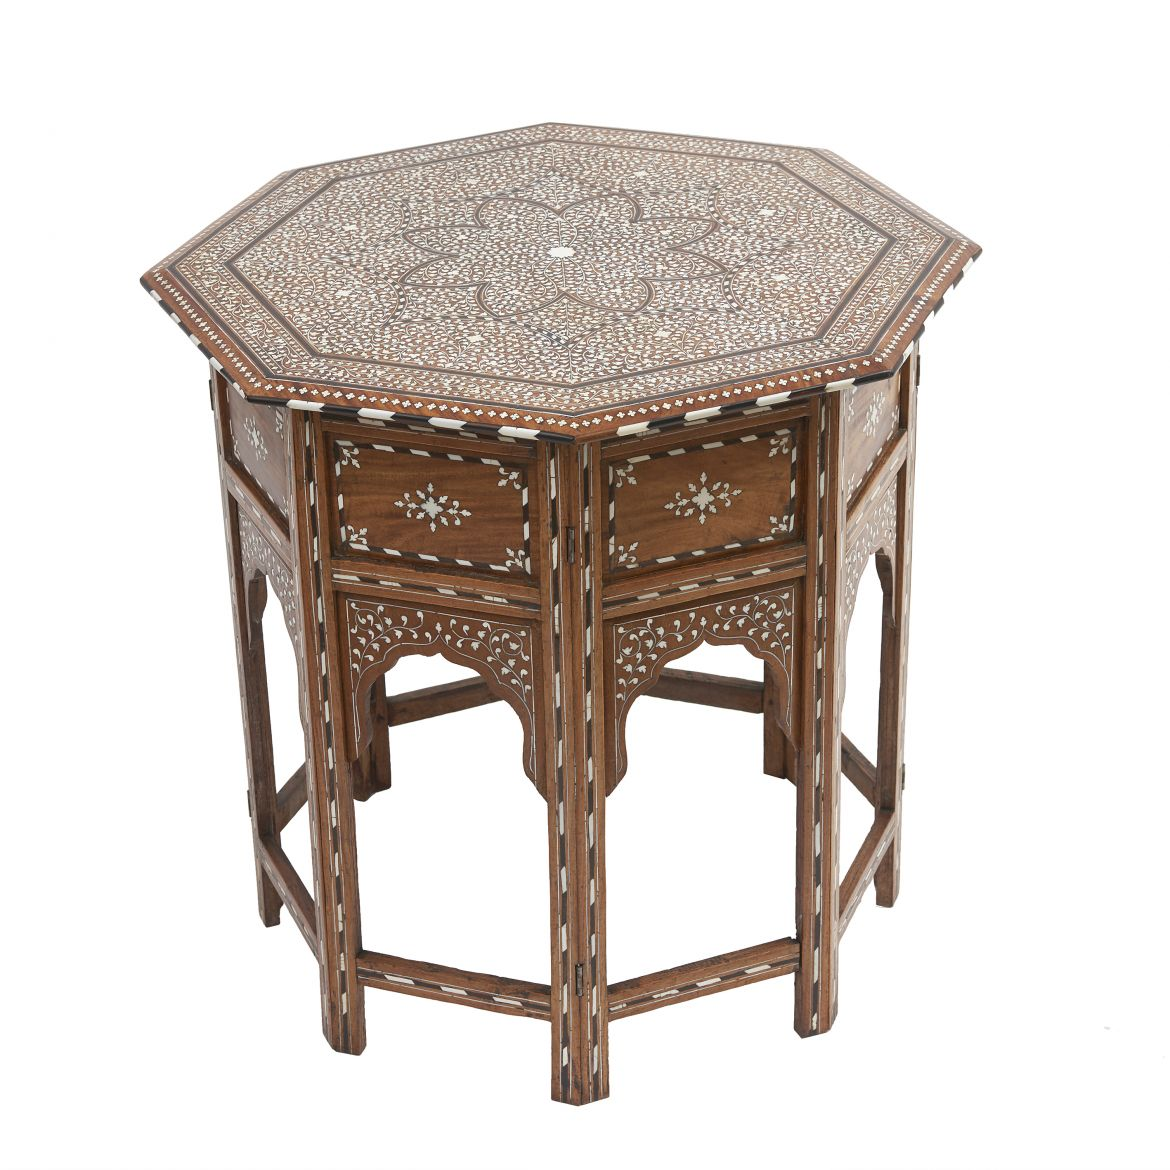 Indian Folding Octagonal Table